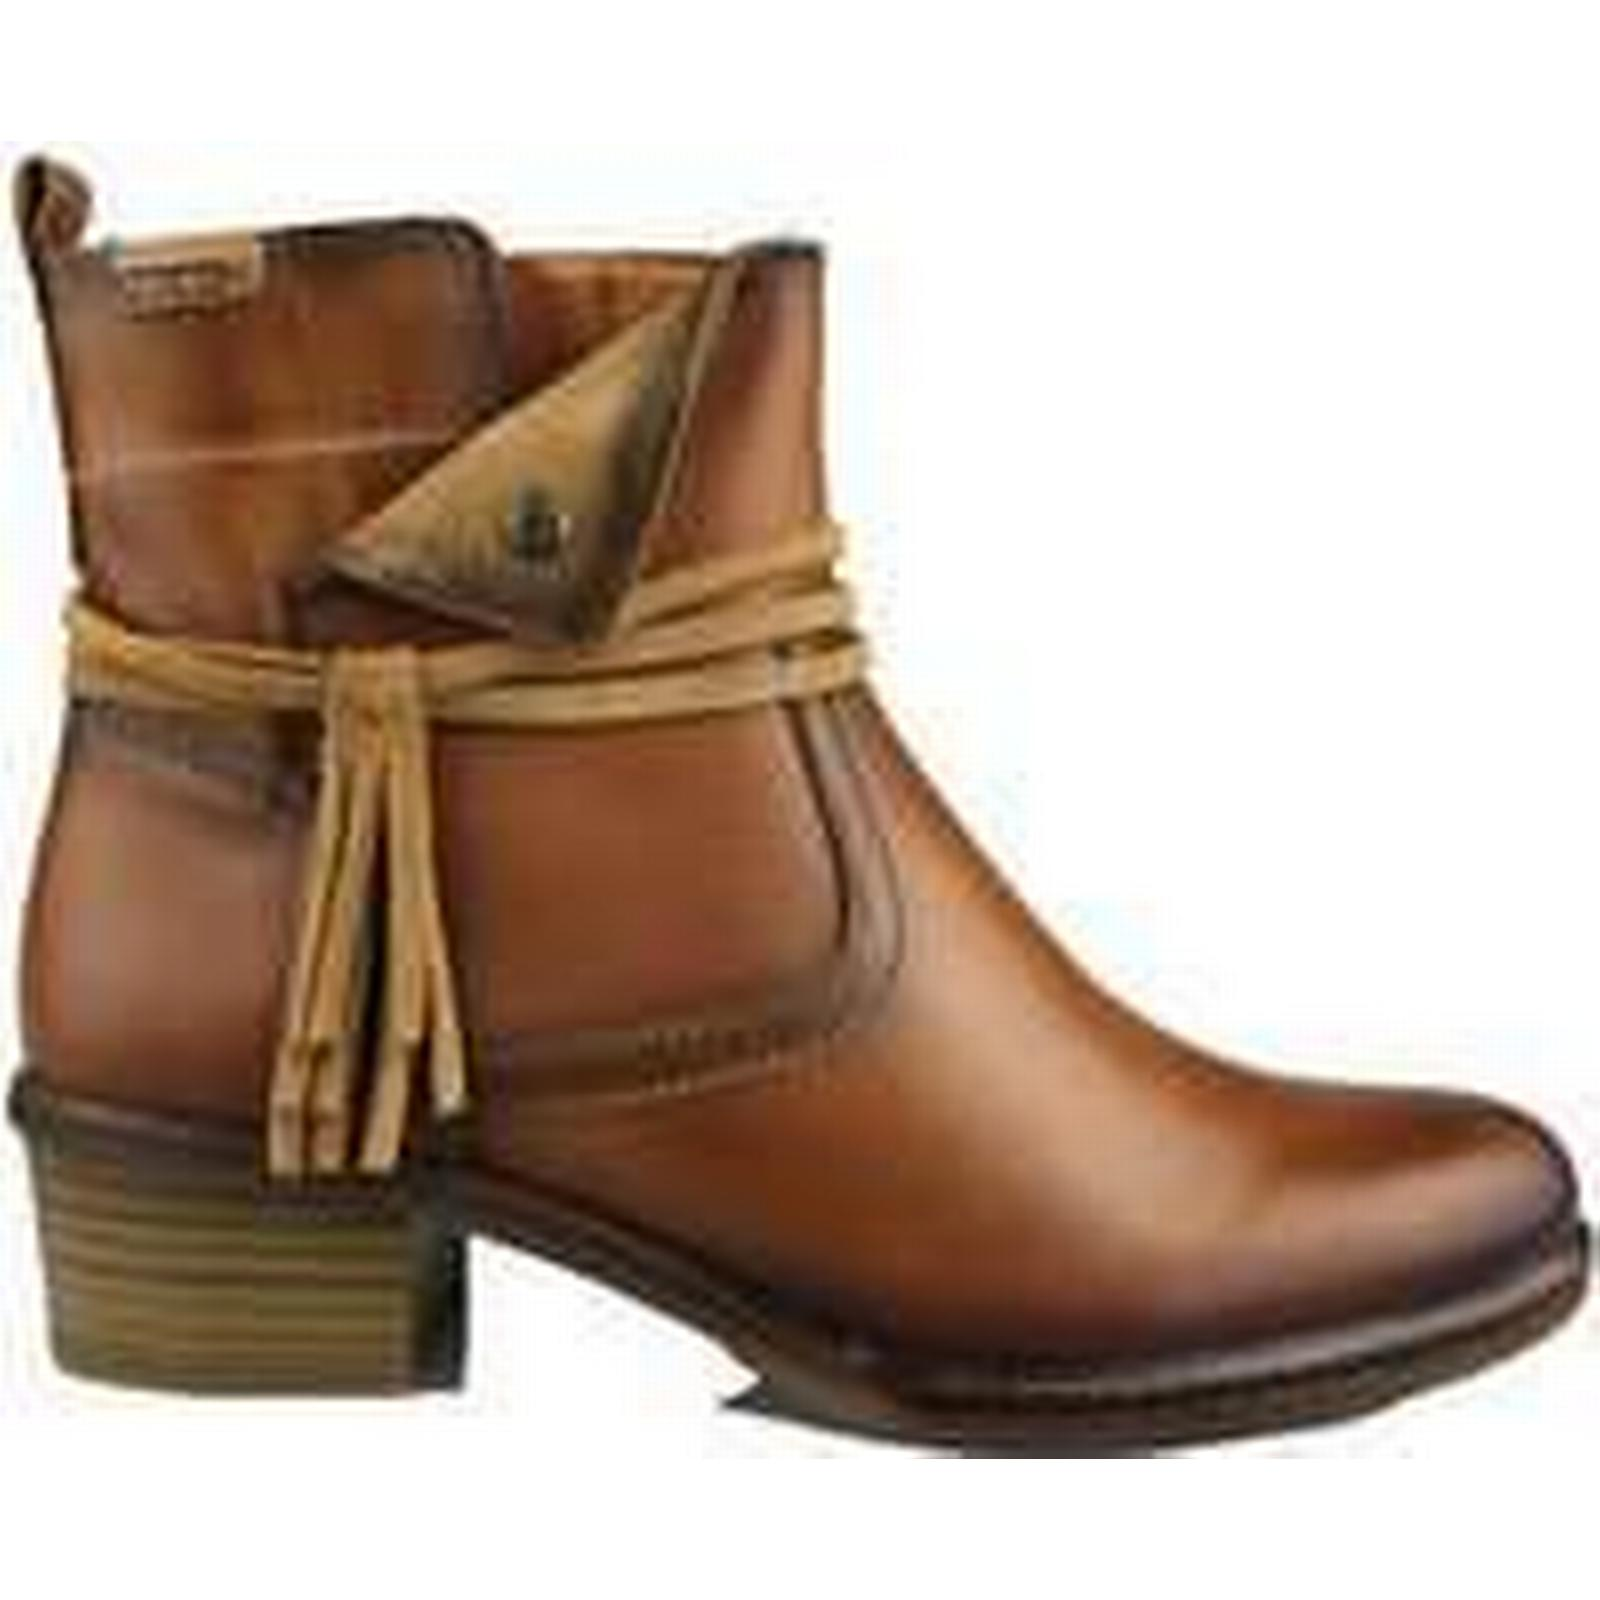 Spartoo.co.uk Pikolinos Ankle - women's Low Ankle Pikolinos Boots in Brown 029a9e